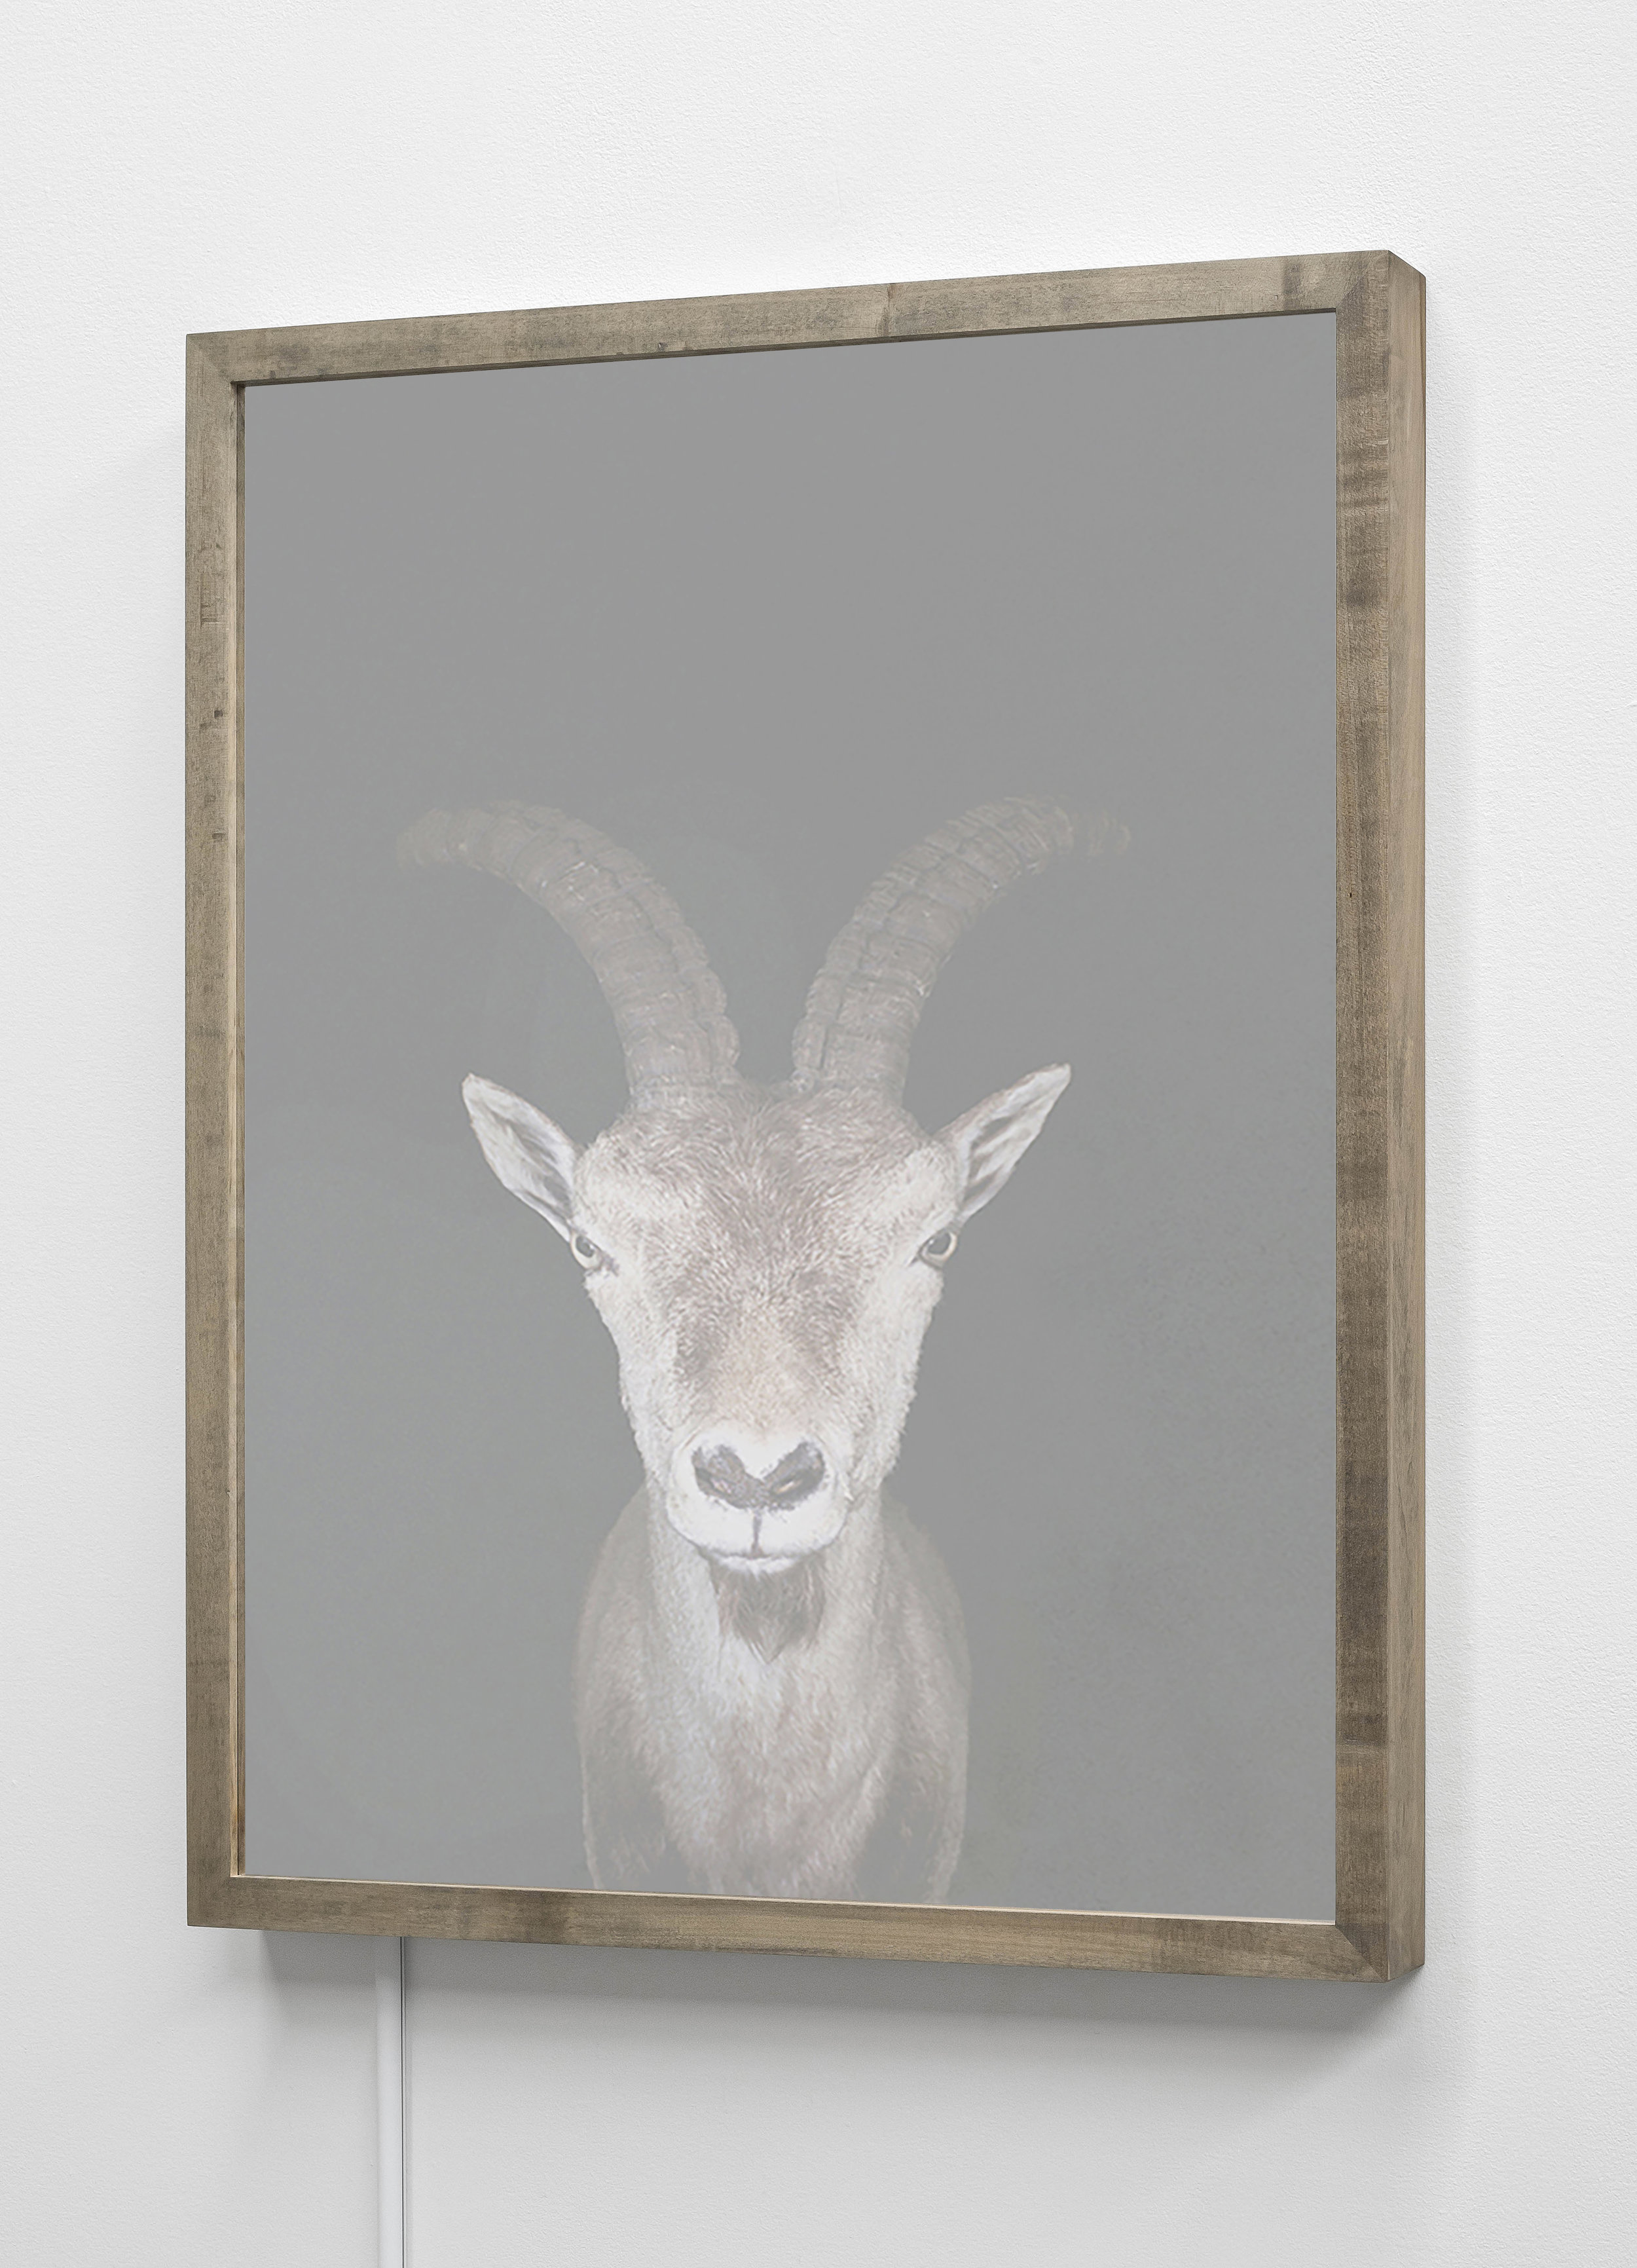 CHRISTINA SEELY  Spanish Ibex,  Capra pyrenaica - Vulnerable Kinetic Mirrored Lightbox  Available sizes: 30 x 24 in | Edition of 3 + 1AP 20 x 16 in | Edition of 3 + 1AP